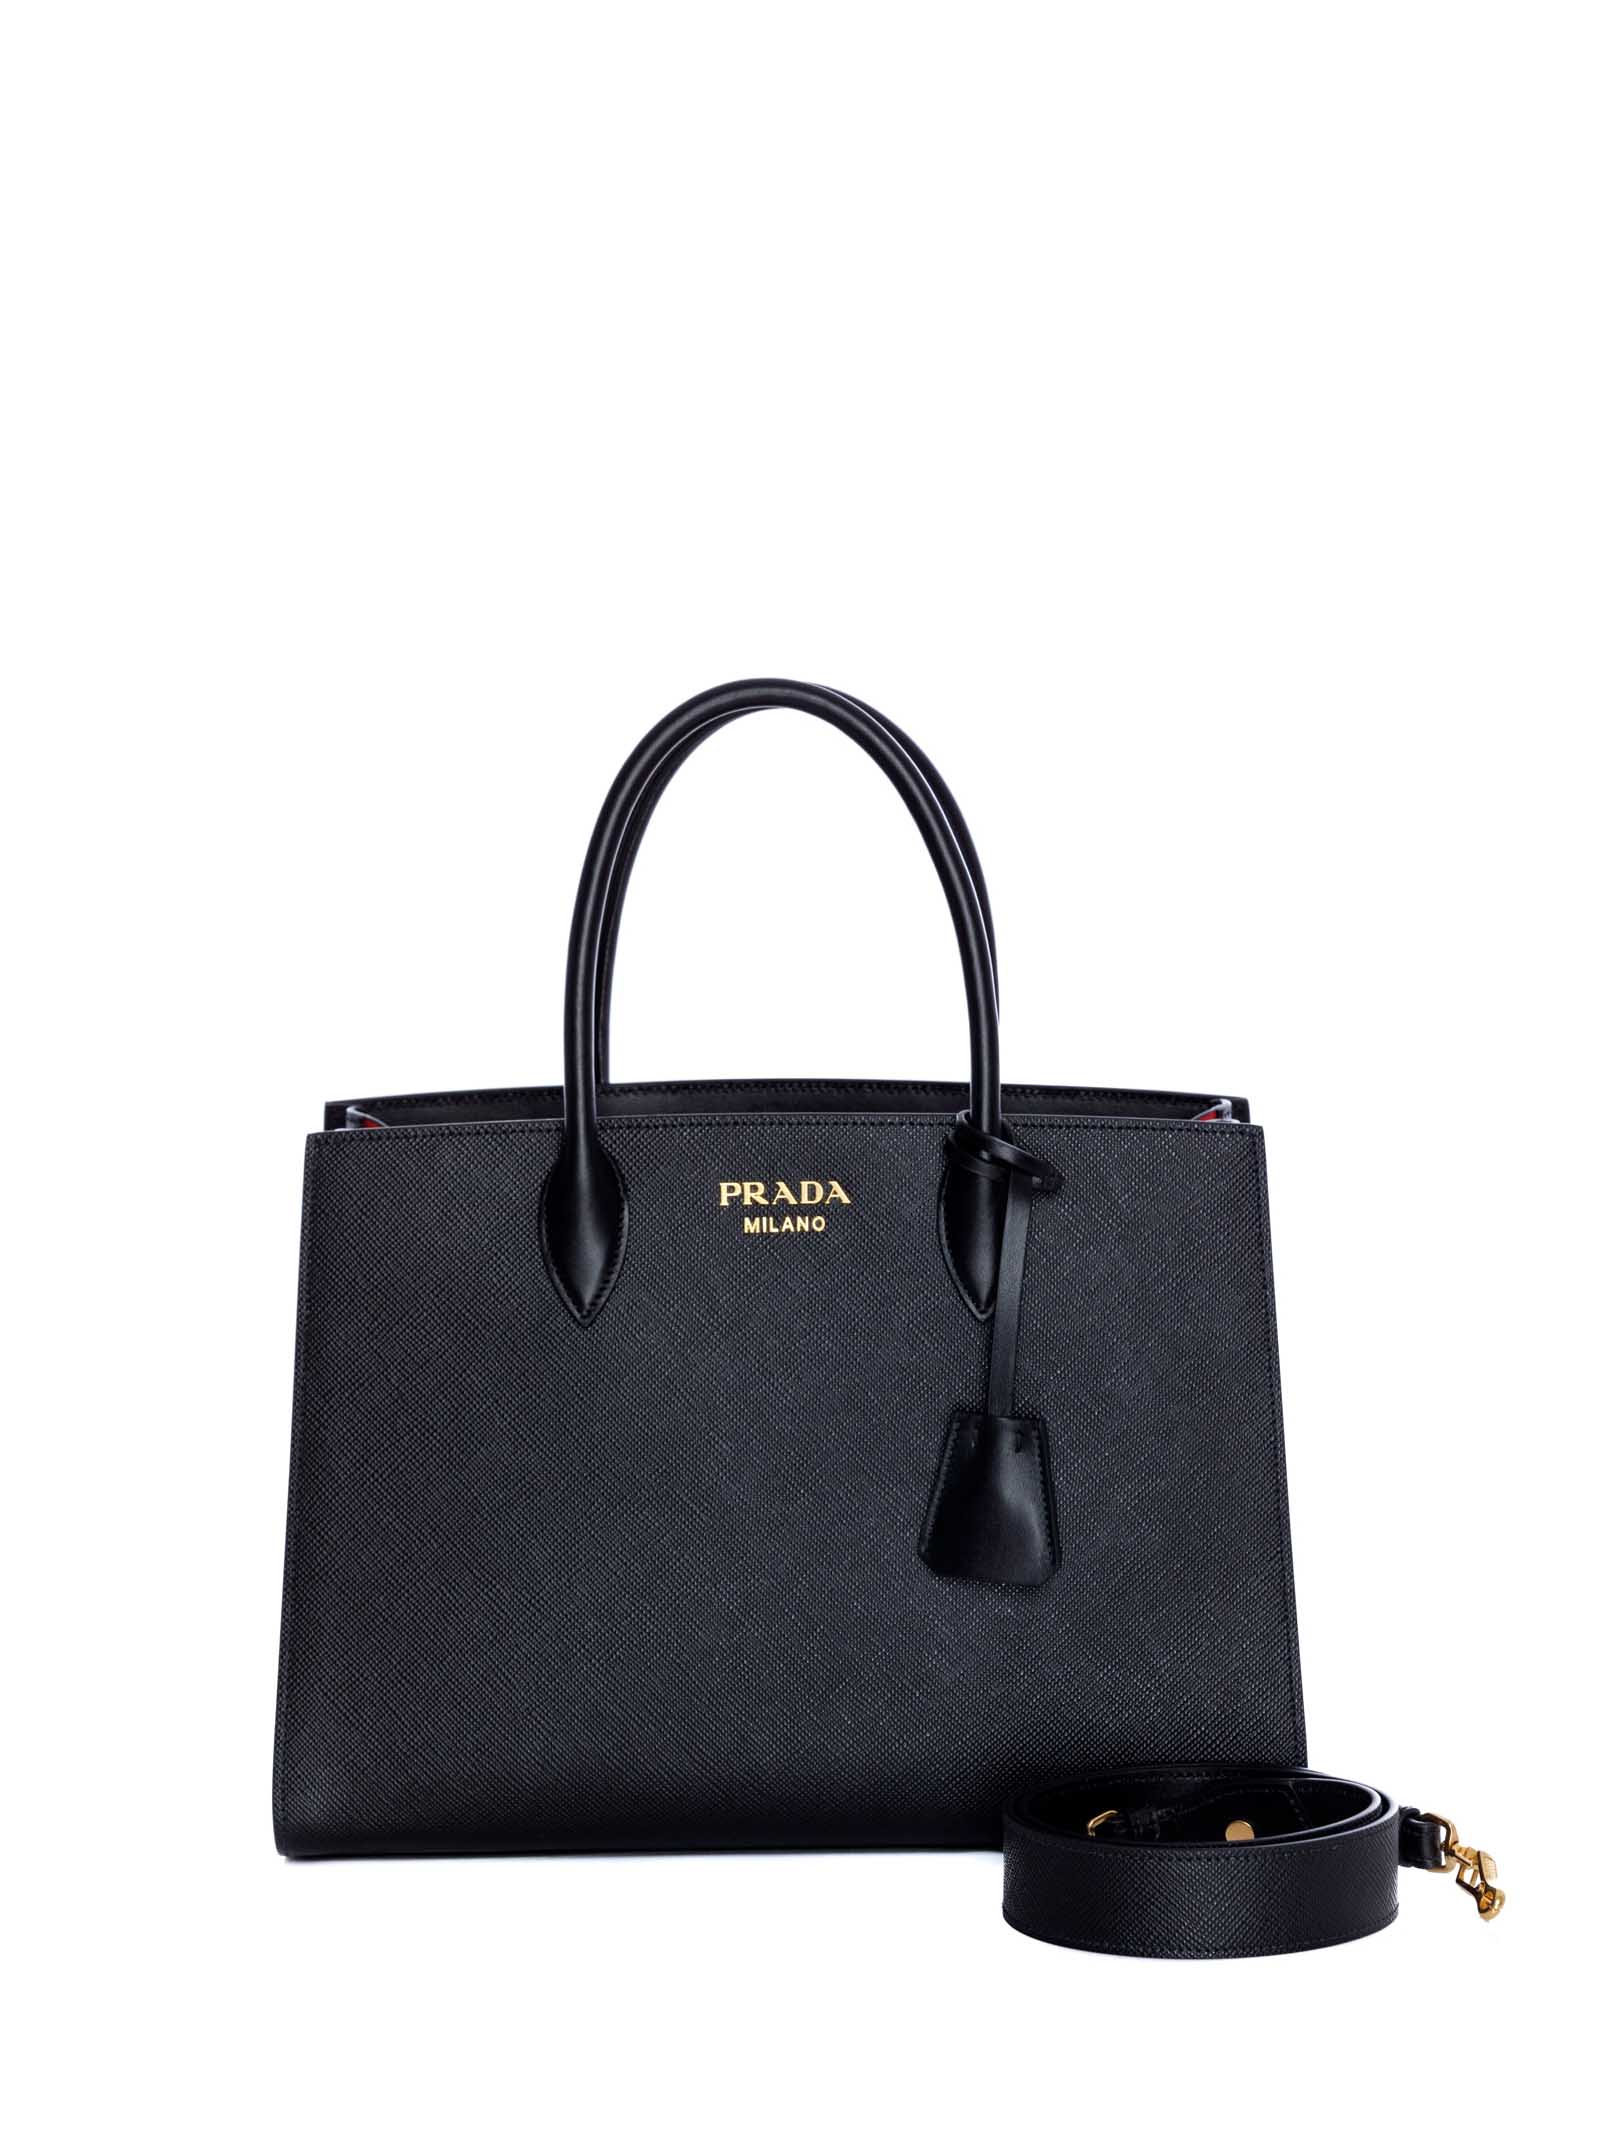 2f8fe98be4c8 Prada Prada Prada Saffiano Leather Tote Bag - NERO FUOCO - 10895330 ...